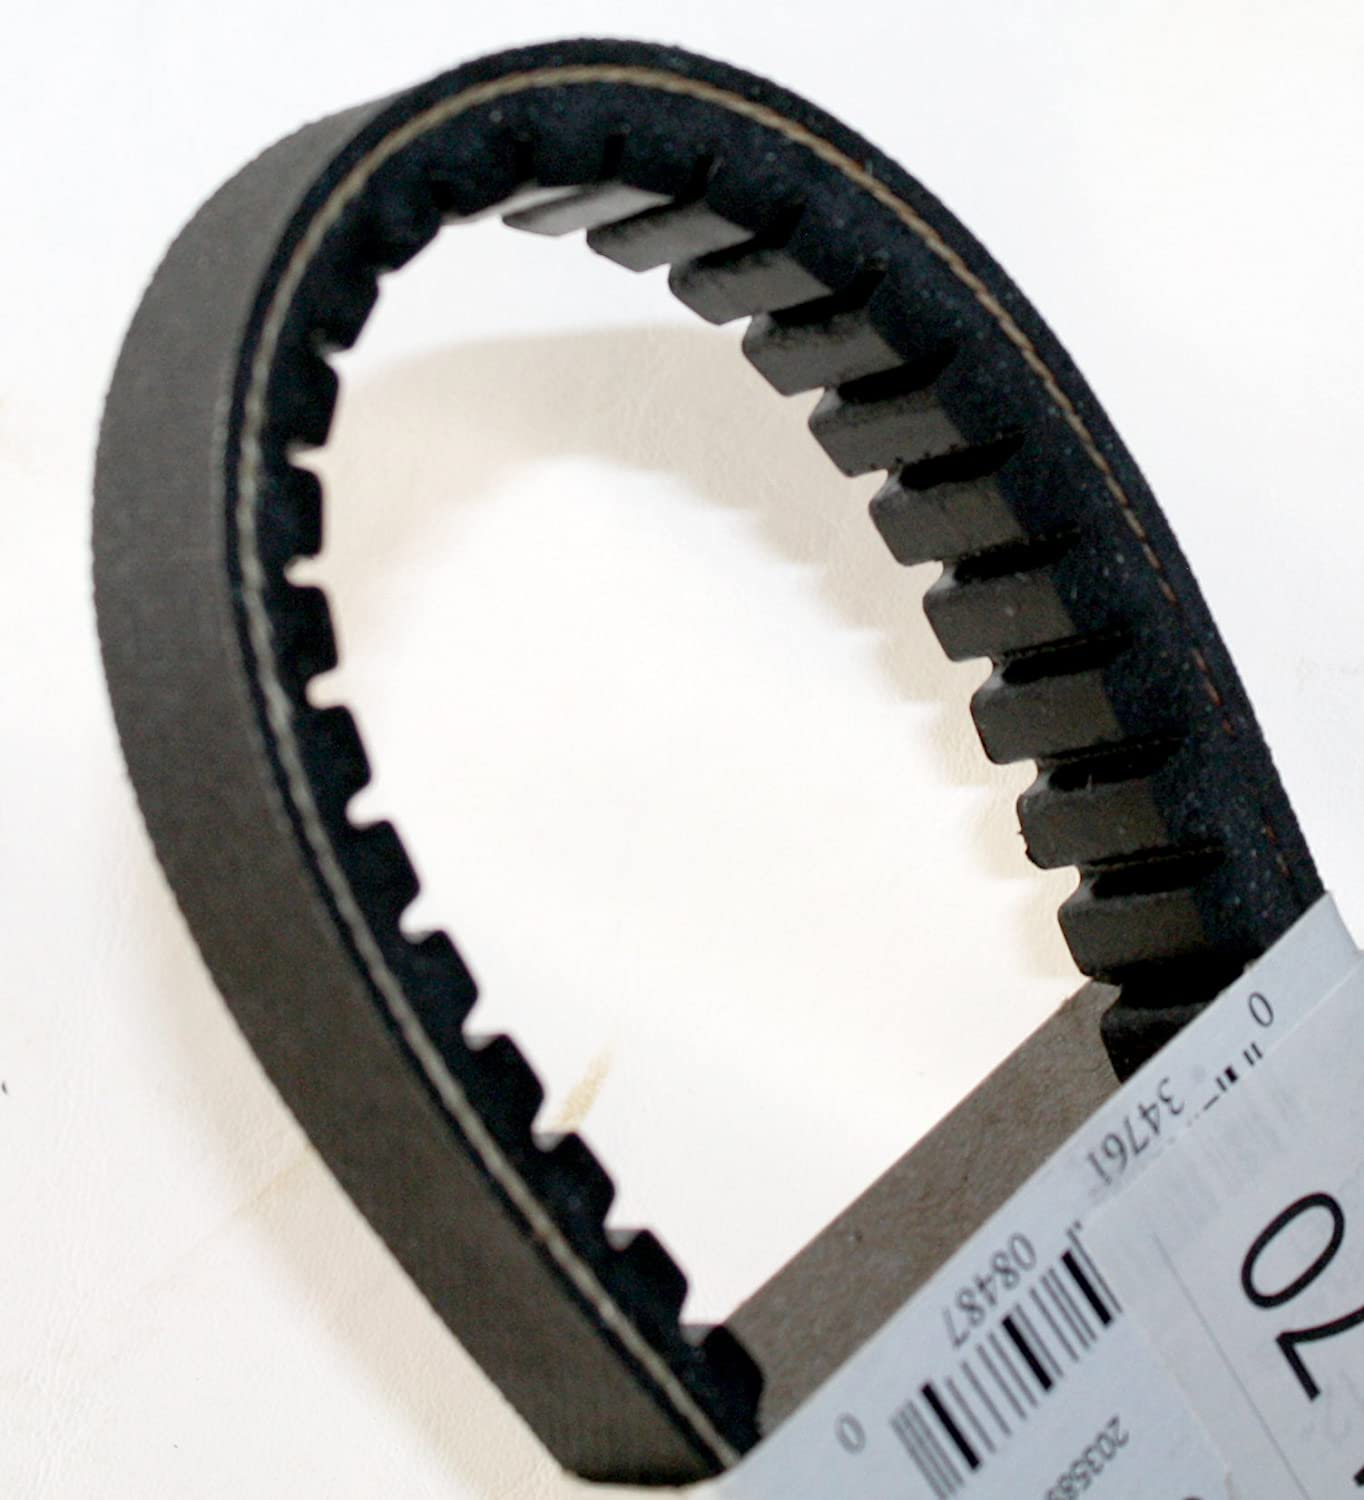 Rotary 8487 Go Cart Torque Convert Belt Replaces Comet 203589a and Manco 5959 for sale online